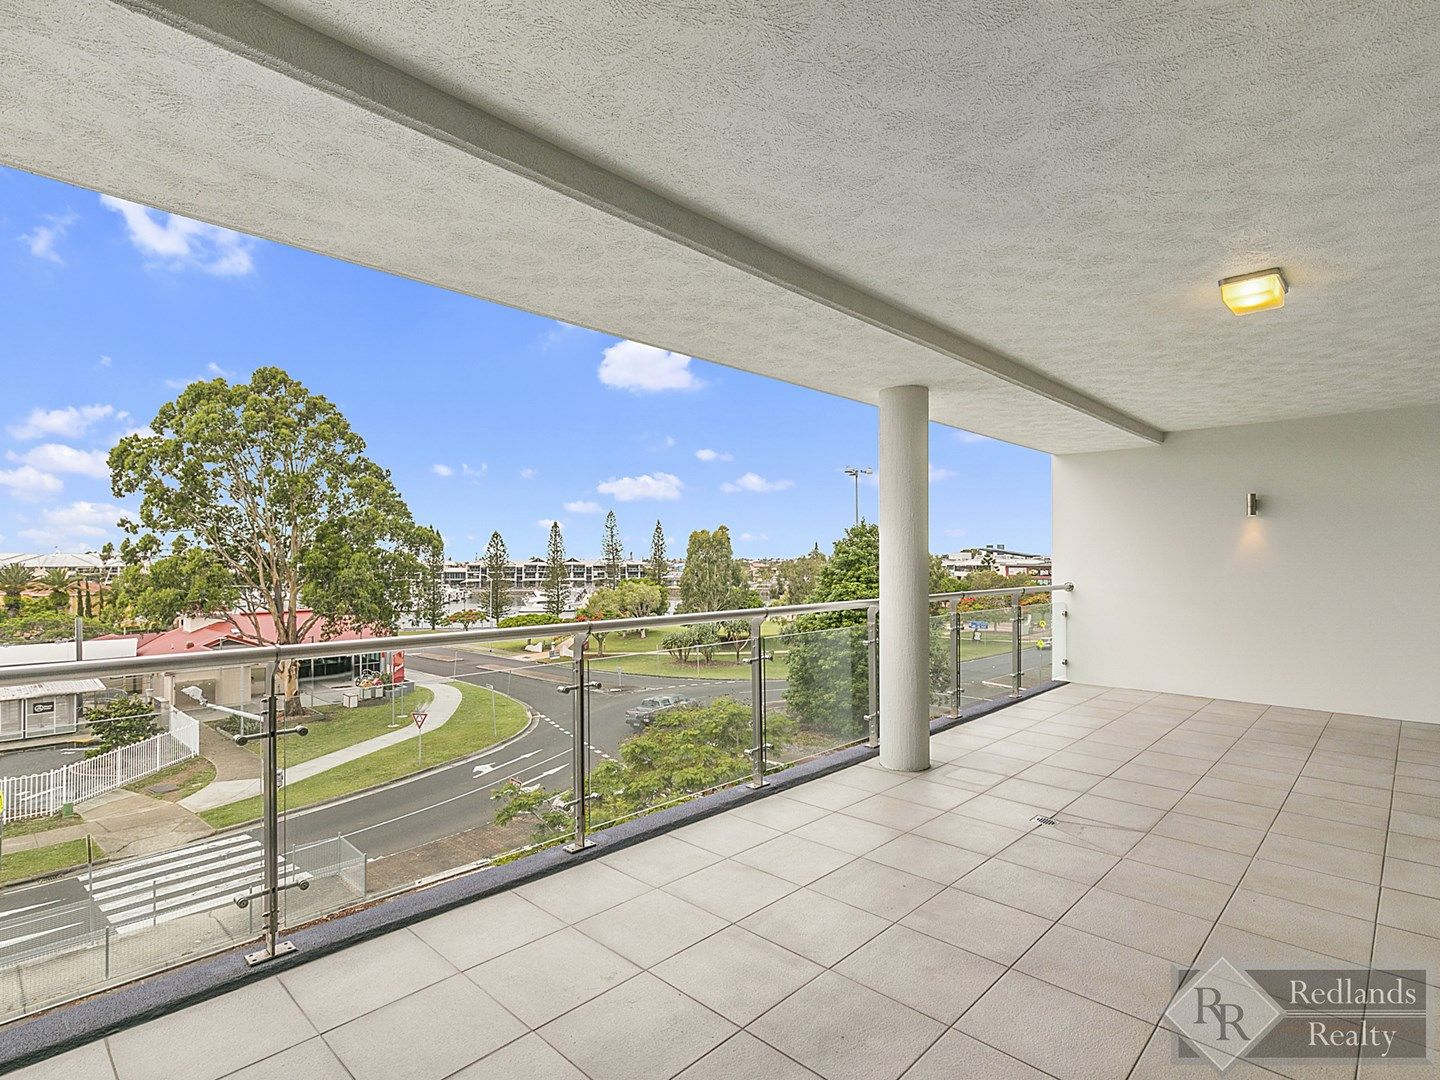 5/141 Shore Street West, Cleveland QLD 4163, Image 0